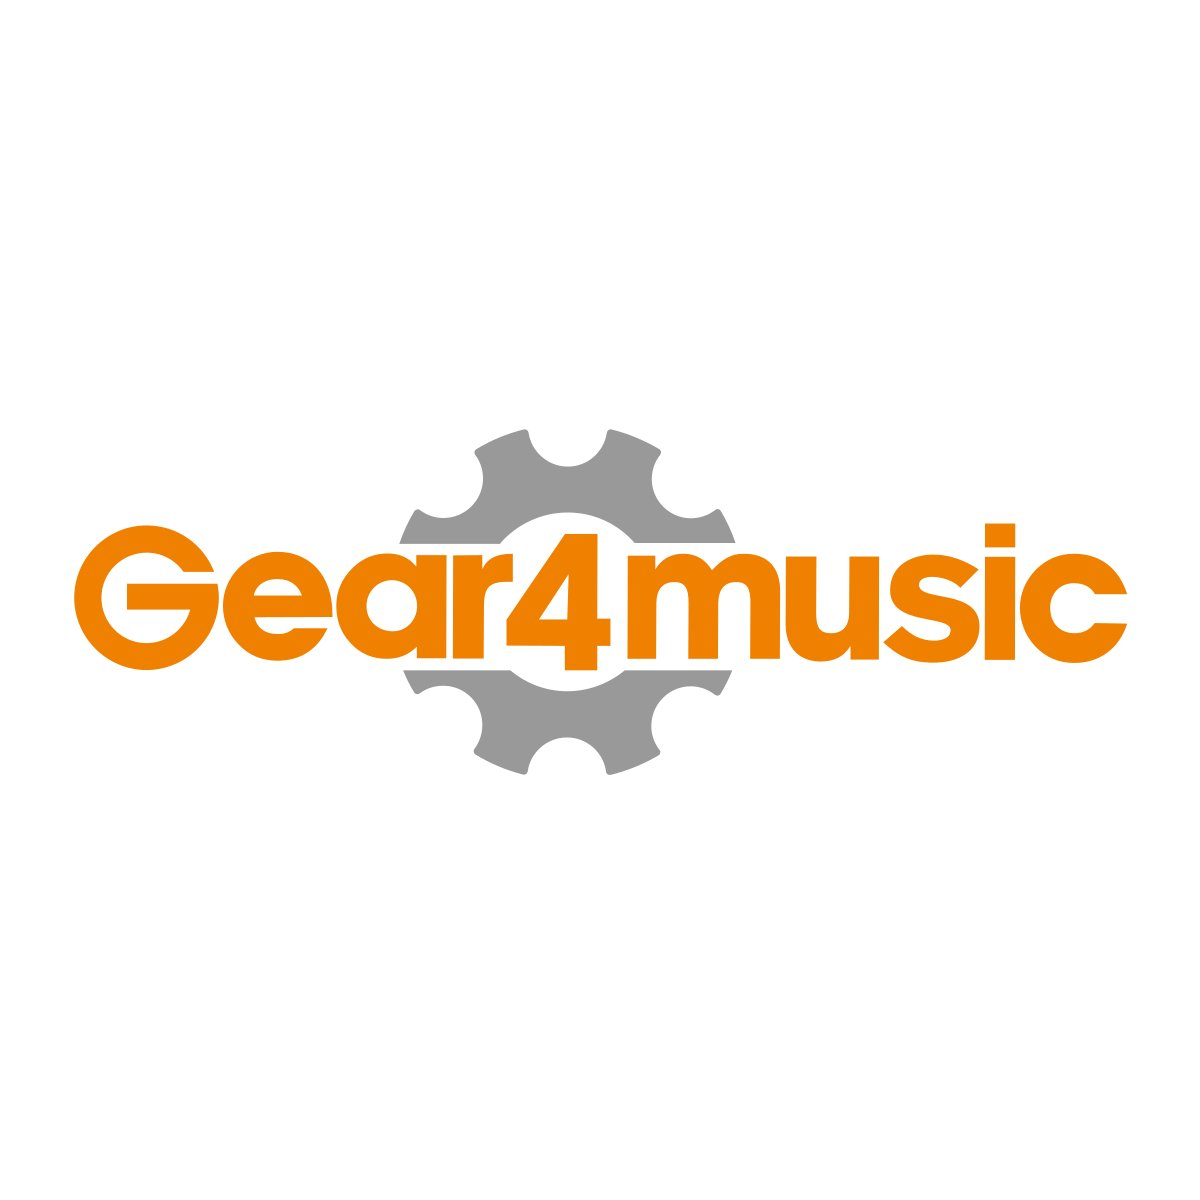 Pack Complet de Performance Vocale - Exclusivité Gear4music!